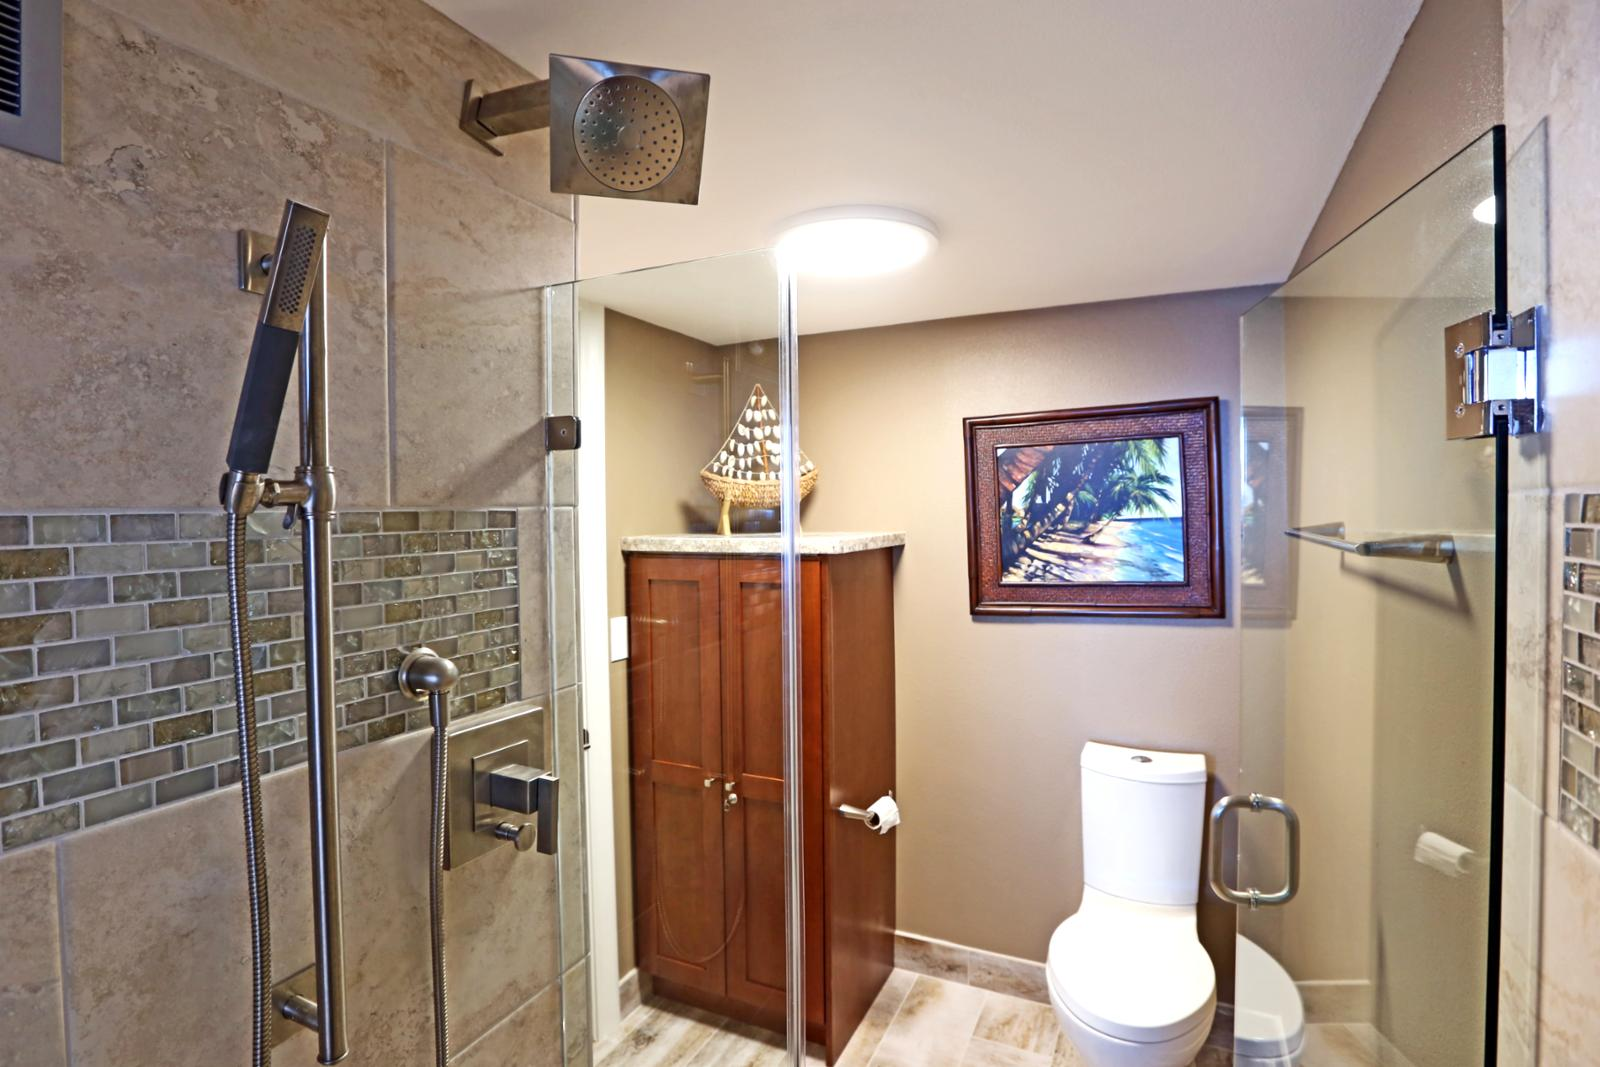 Glass restroom features